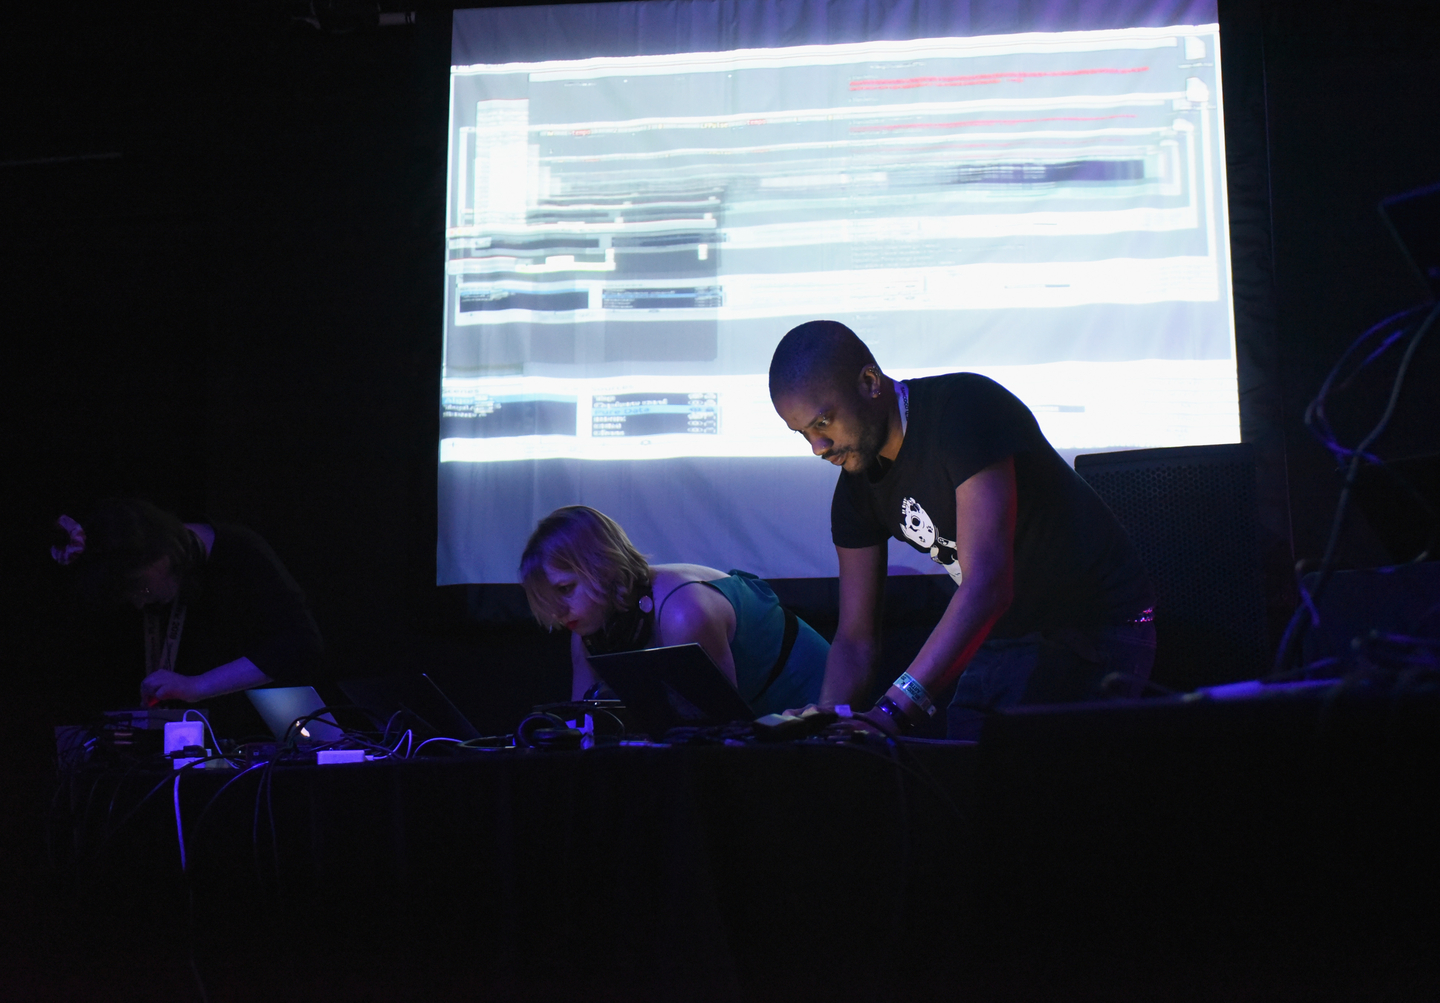 (L-R) Shelly Knotts and Joanne Armitage of AlgoBabez featuring hellocatfood perform onstage at the Lush presents Algorave: Live Coding Party at The Main II.